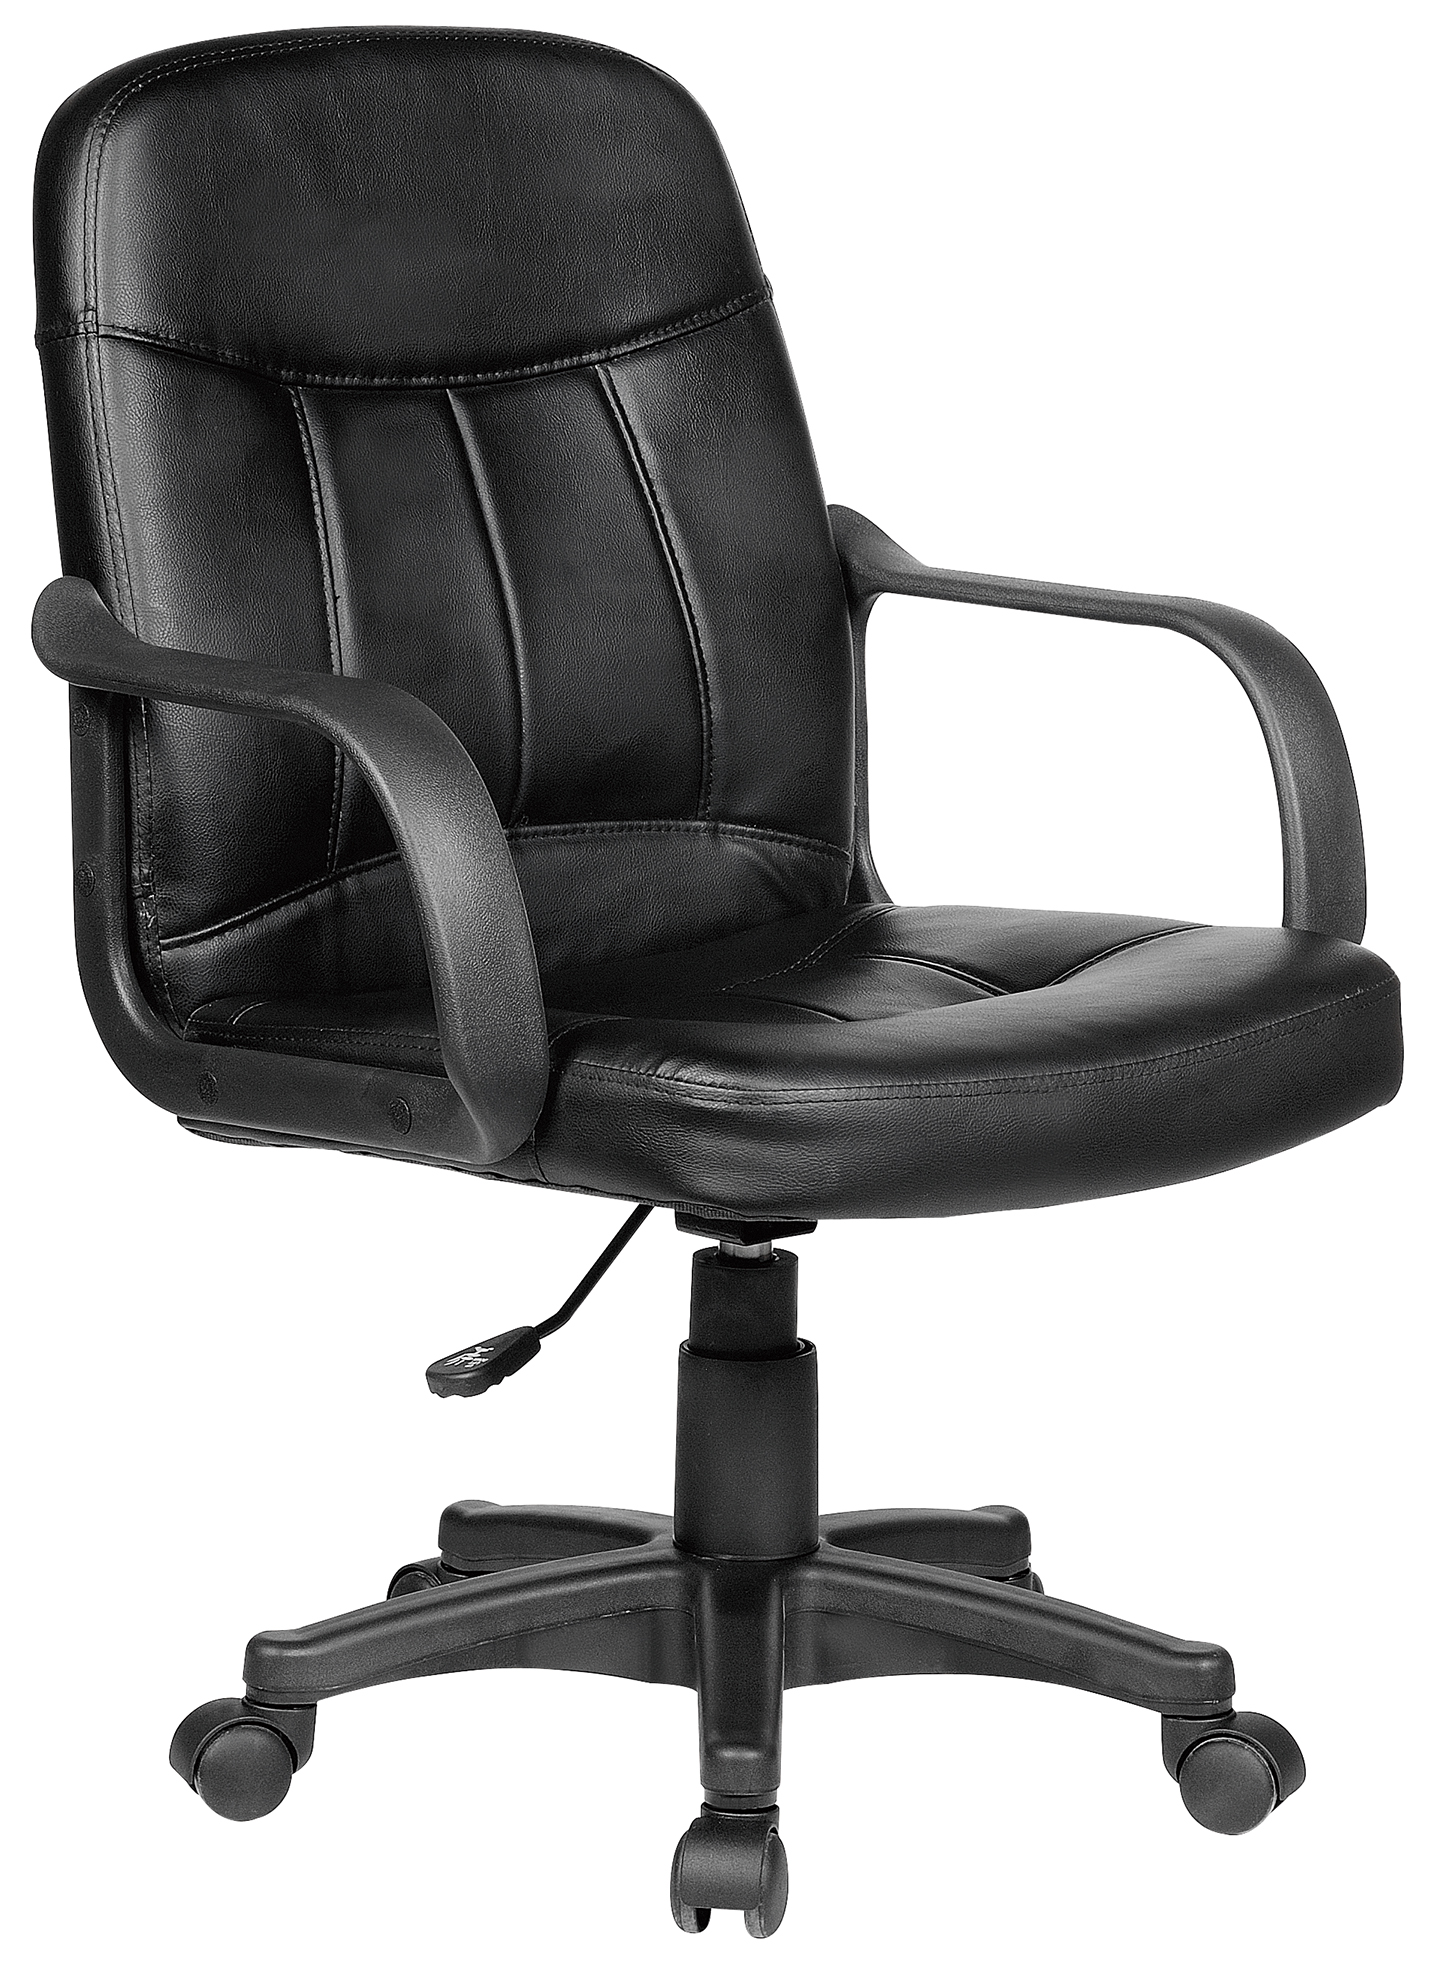 desk chair is too low video gaming new executive office computer premium pu faux